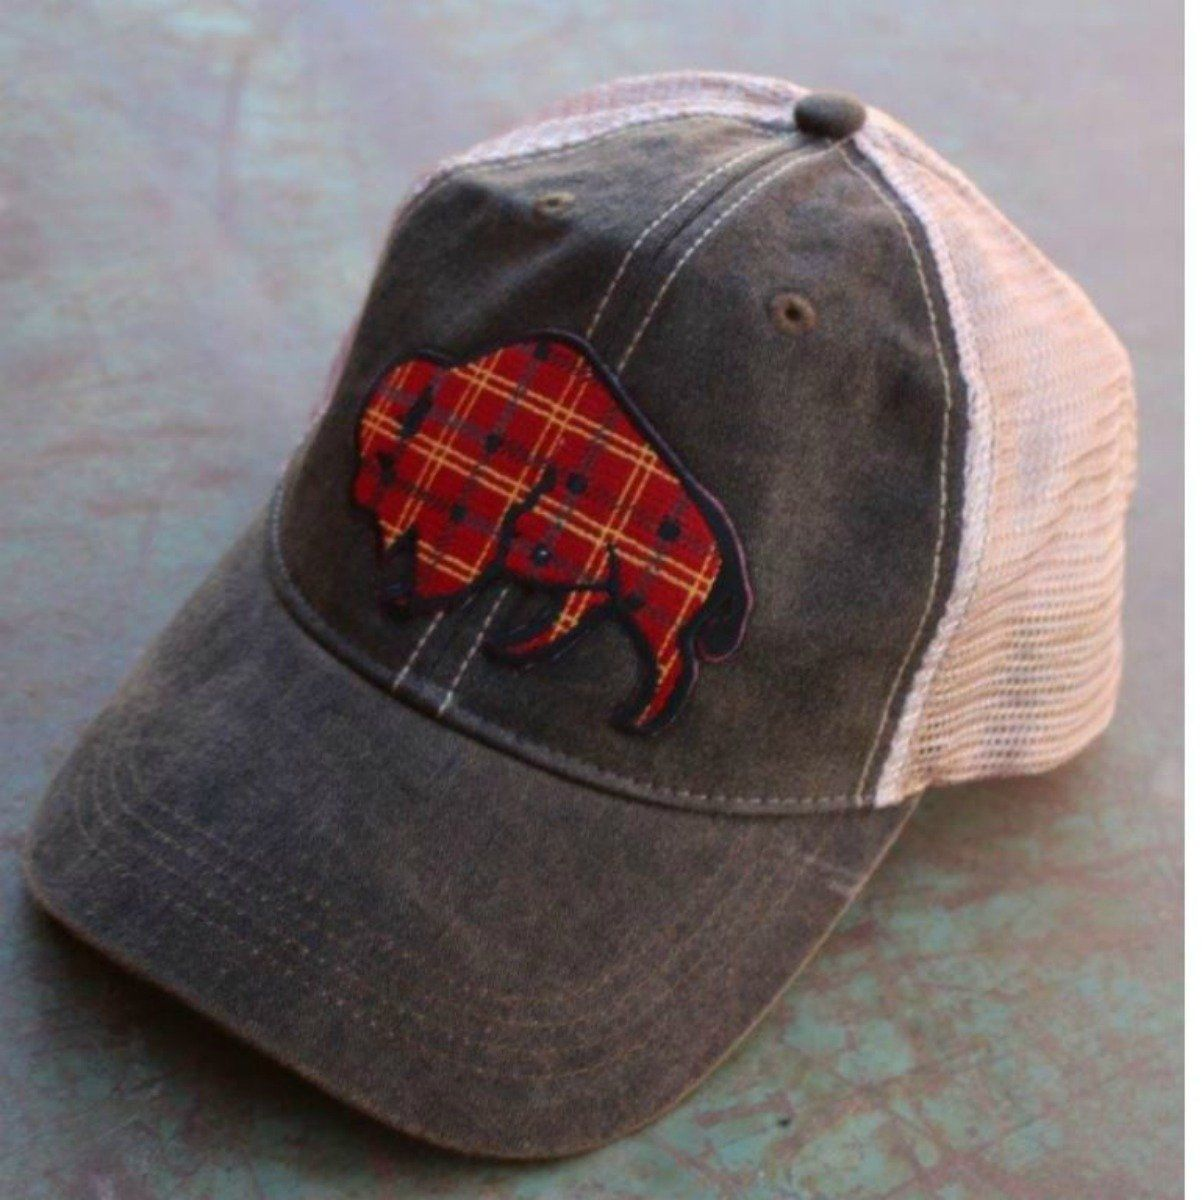 46fc4a8e189 Tartan Plaid Buffalo Cap New for Fall! Details  Medium weight Cotton  Plastic snap back closure Distressed finished Soft Mesh Back Color  Black  Wash Desig